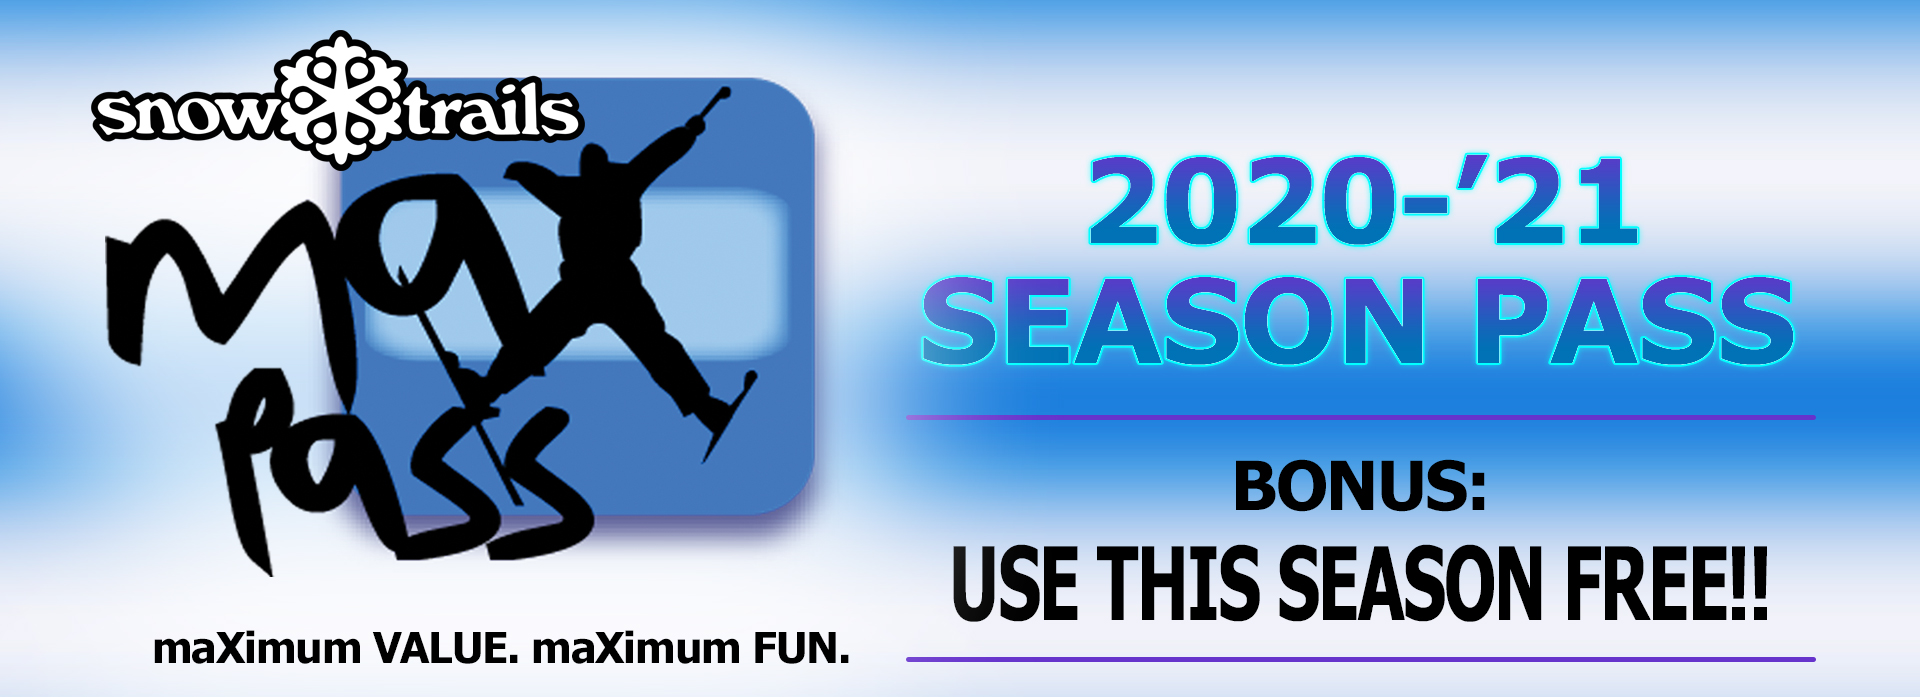 MAXPASS - BONUS: USE THIS SEASON FREE